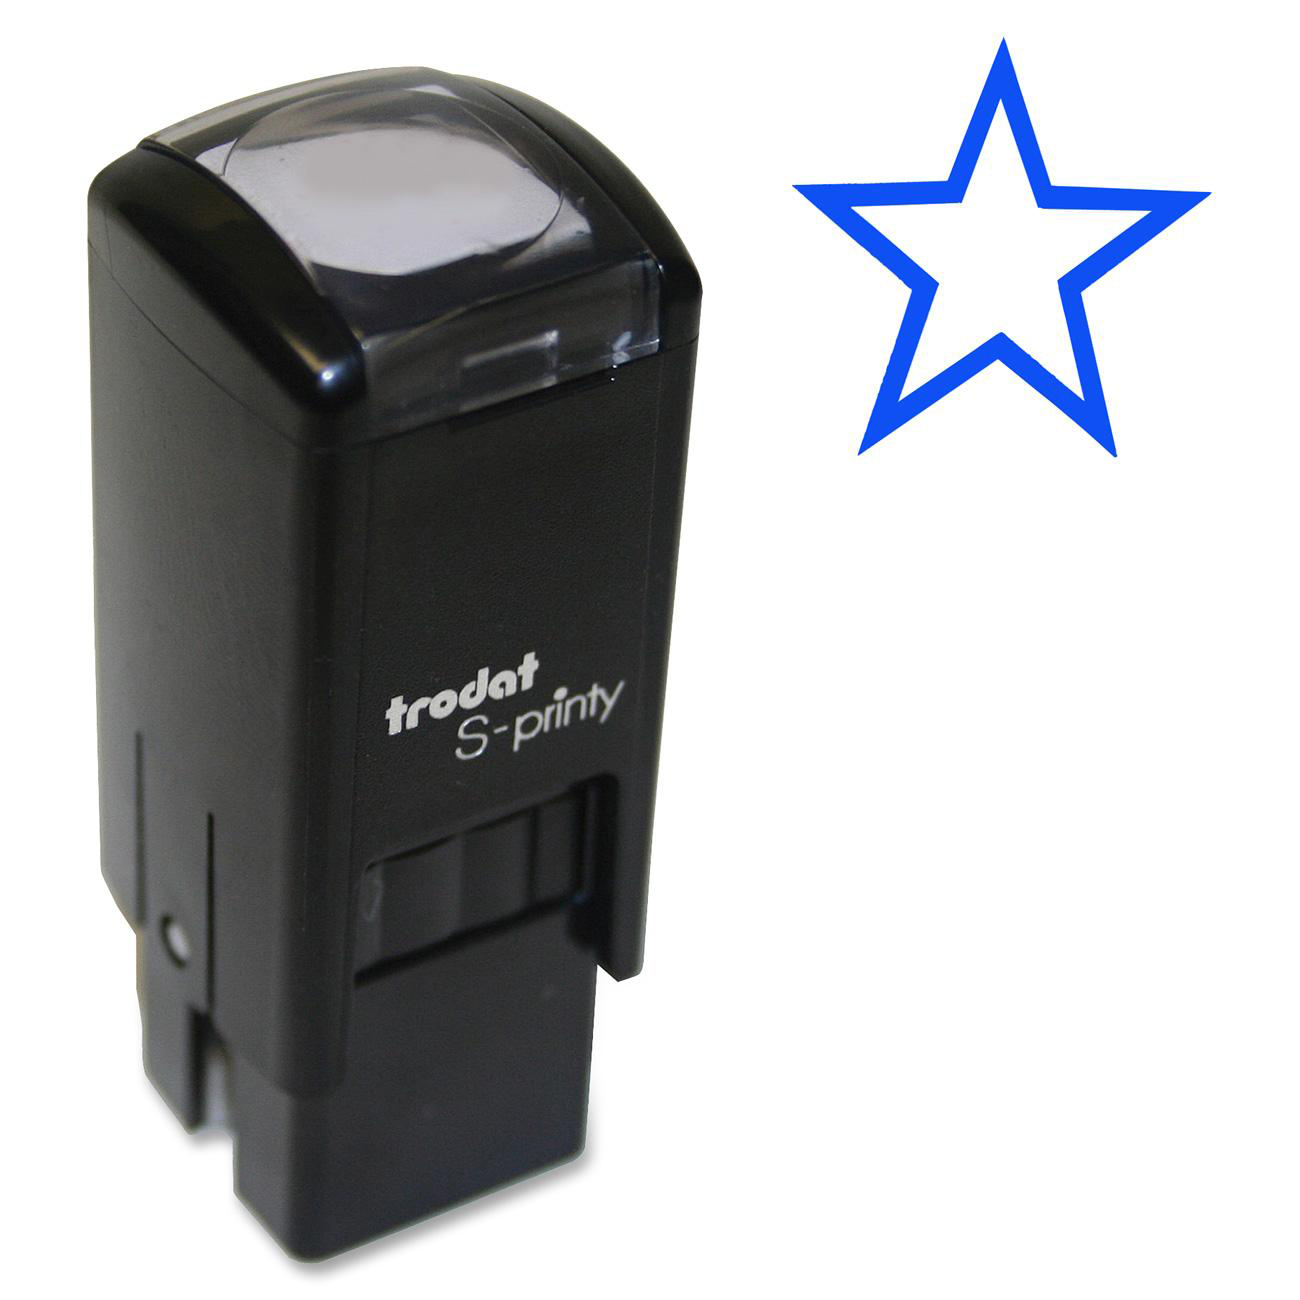 Self Inking Stamp Prints A Star In Blue Features High Quality Casing Mechanism Long Life Replaceable Ink Pad Cartridge And Nontoxic Water Based